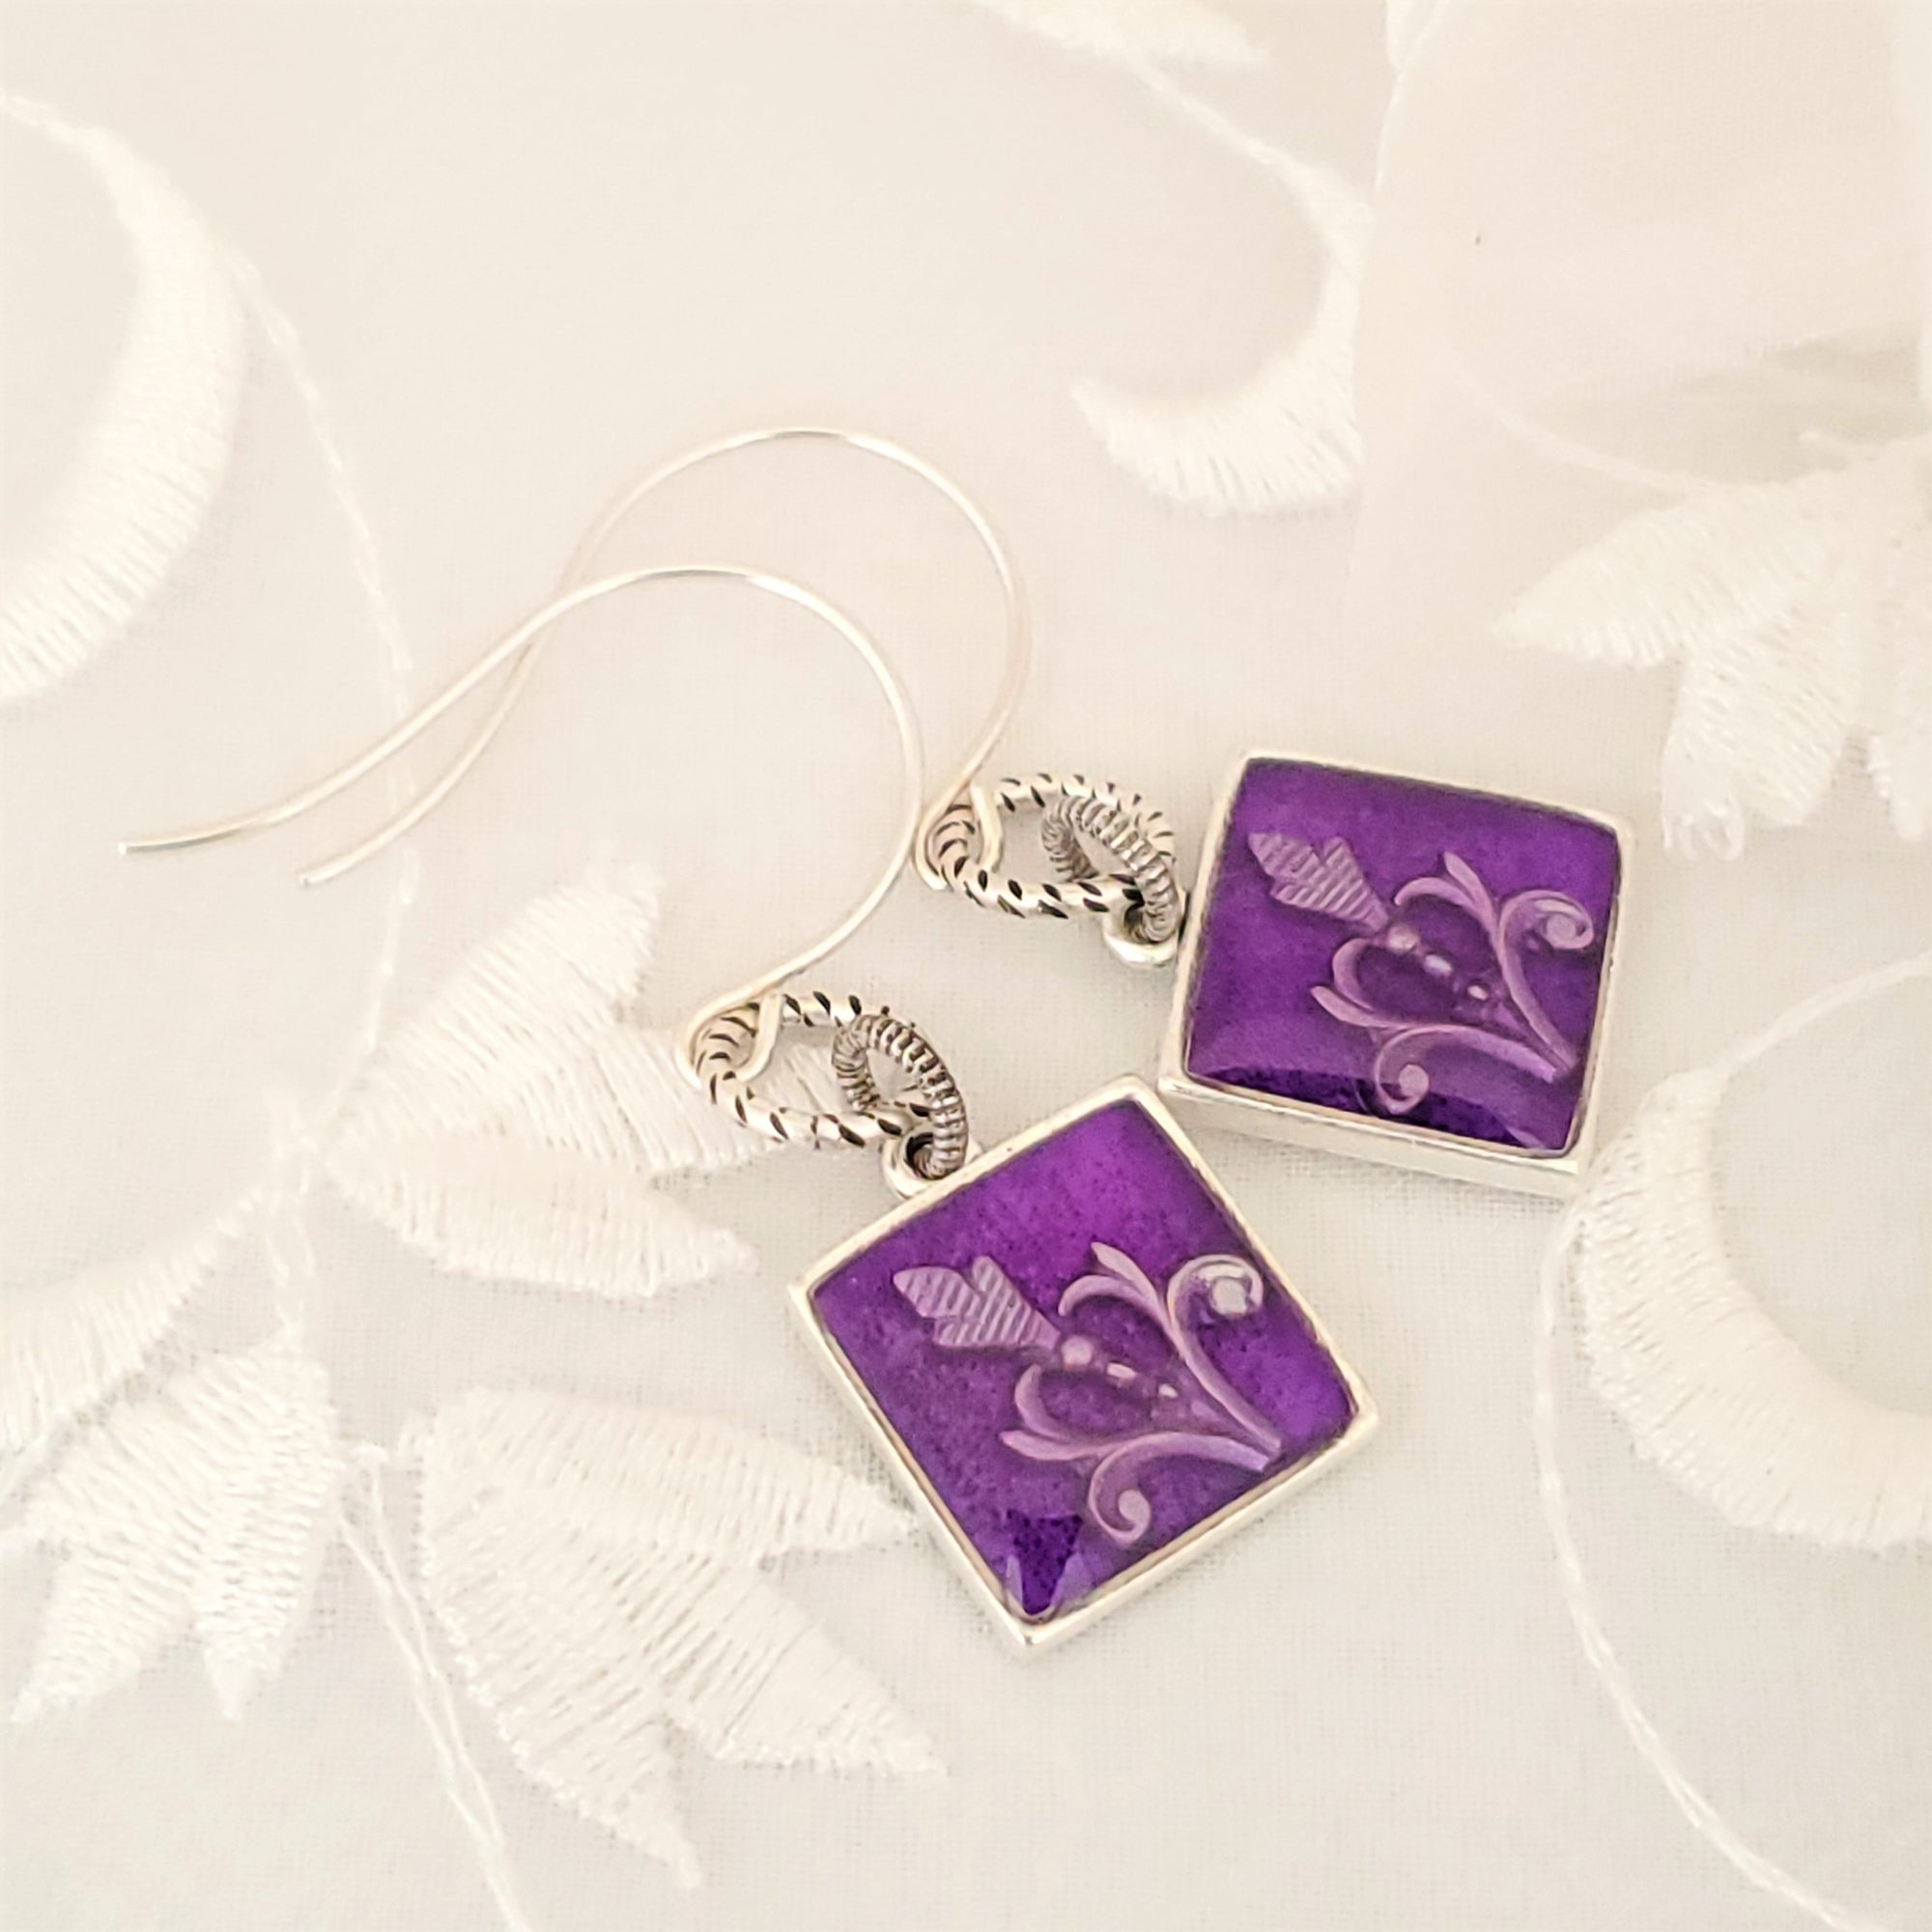 Antique Silver Square Earrings with Purple Resin